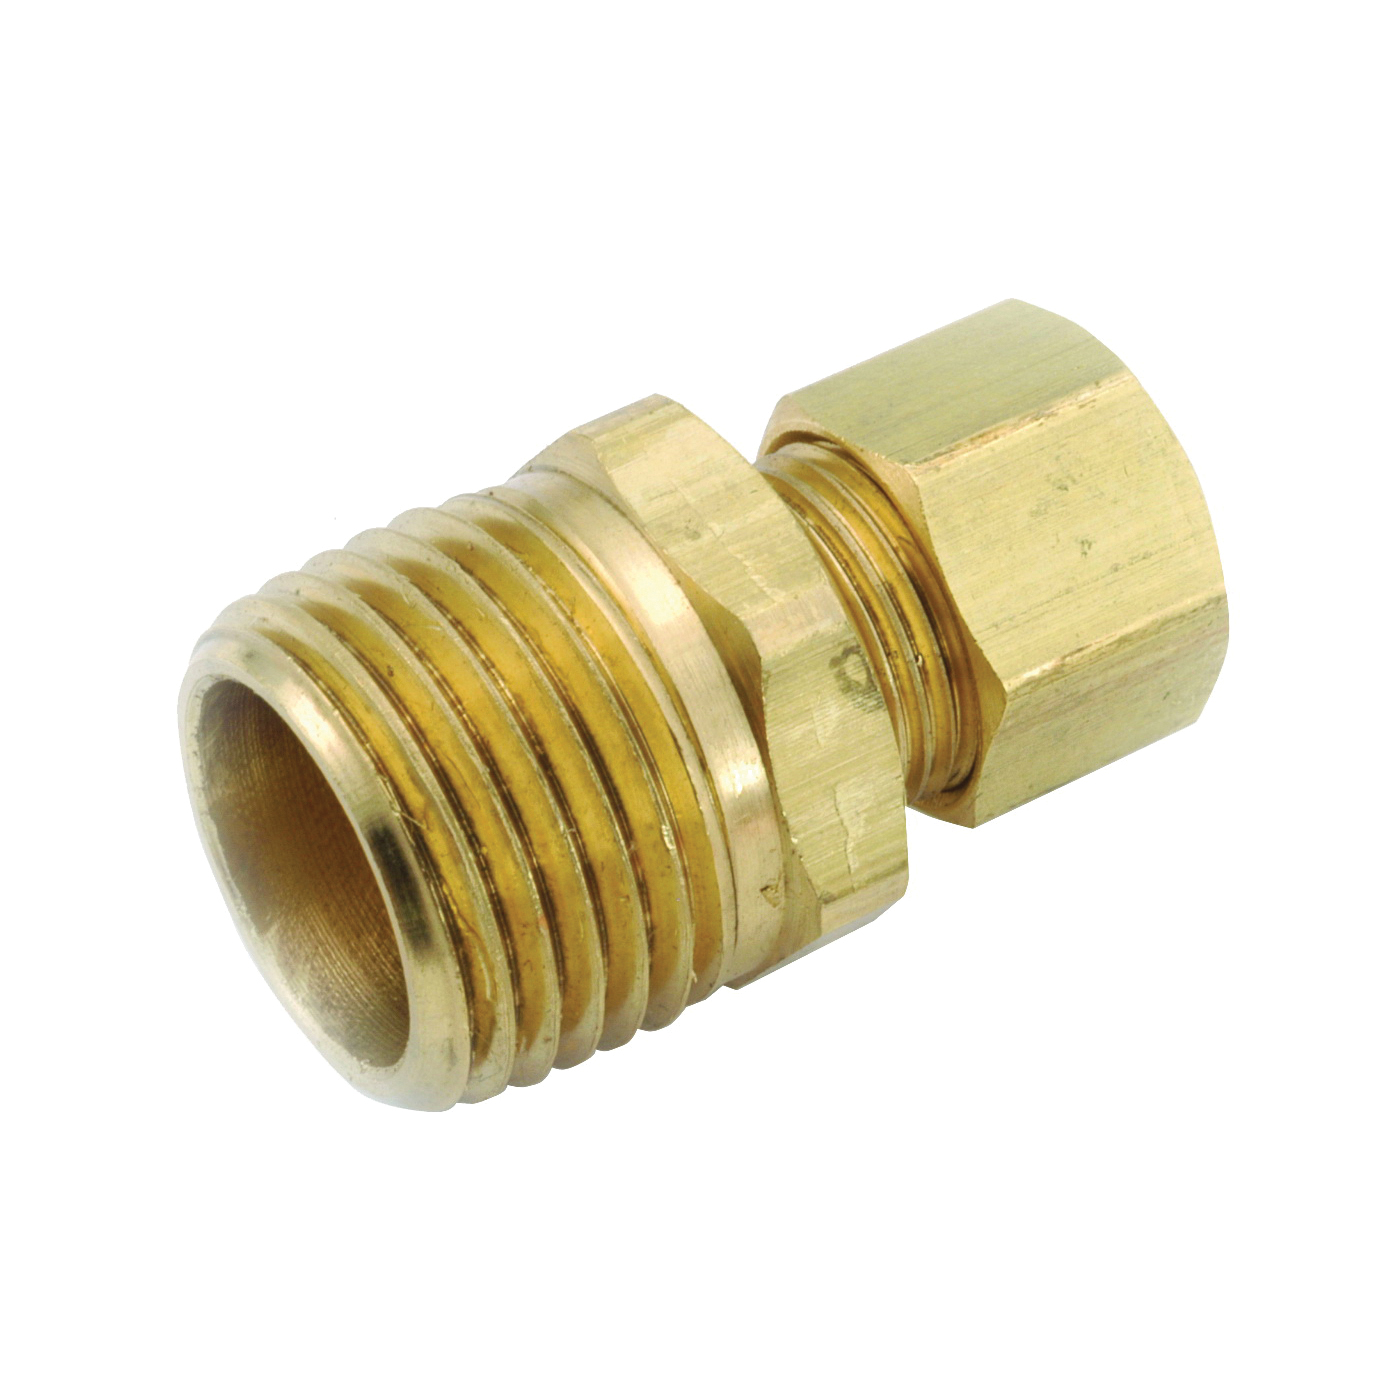 Picture of Anderson Metals 750068-0404 Connector, 1/4 in Compression, 1/4 in Male